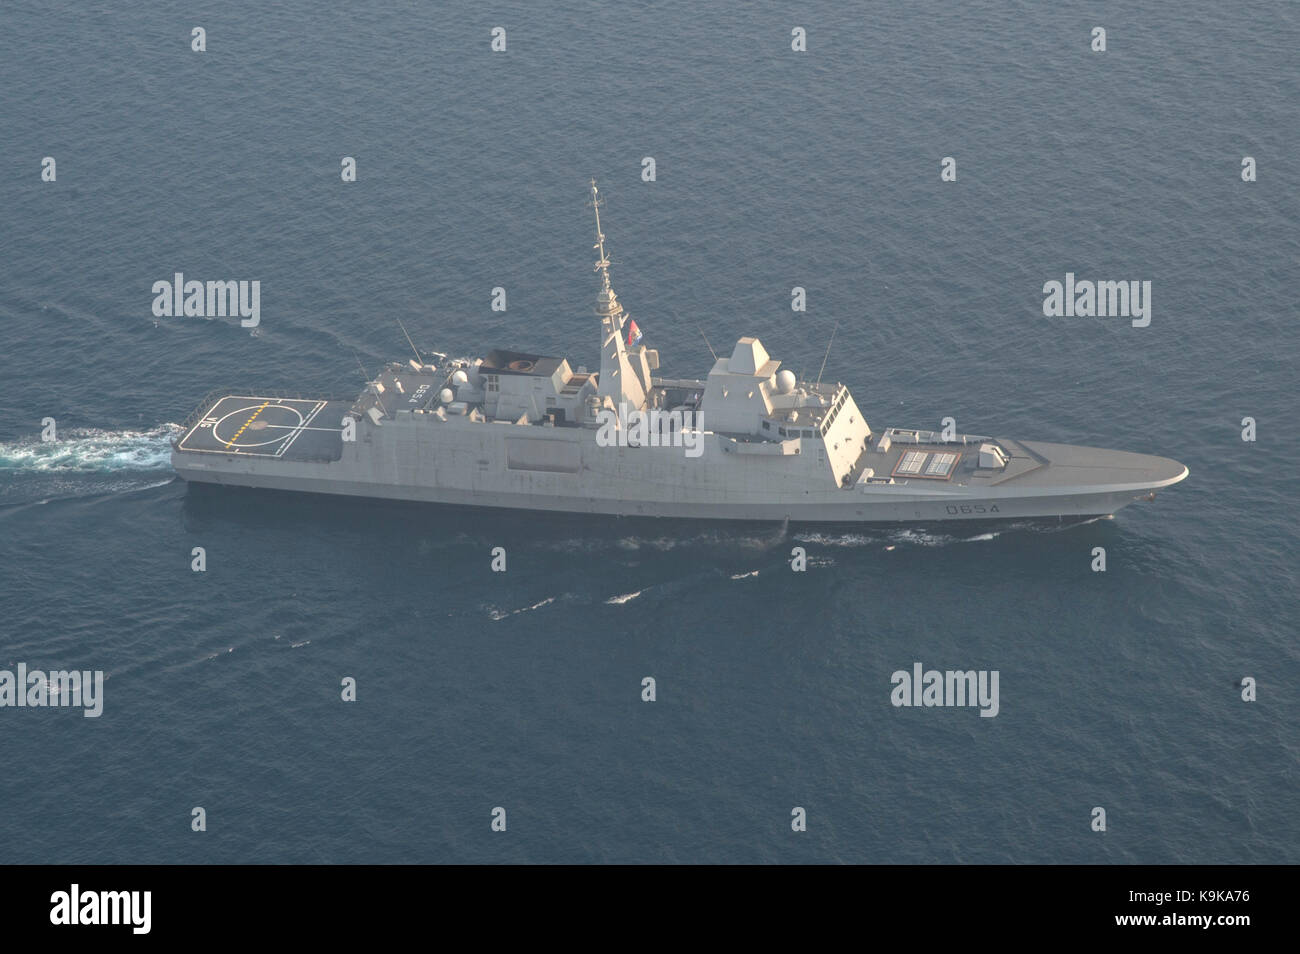 The French navy Cassard-class air defense destroyer Jean Bart (D615) transits the Arabian Gulf. - Stock Image